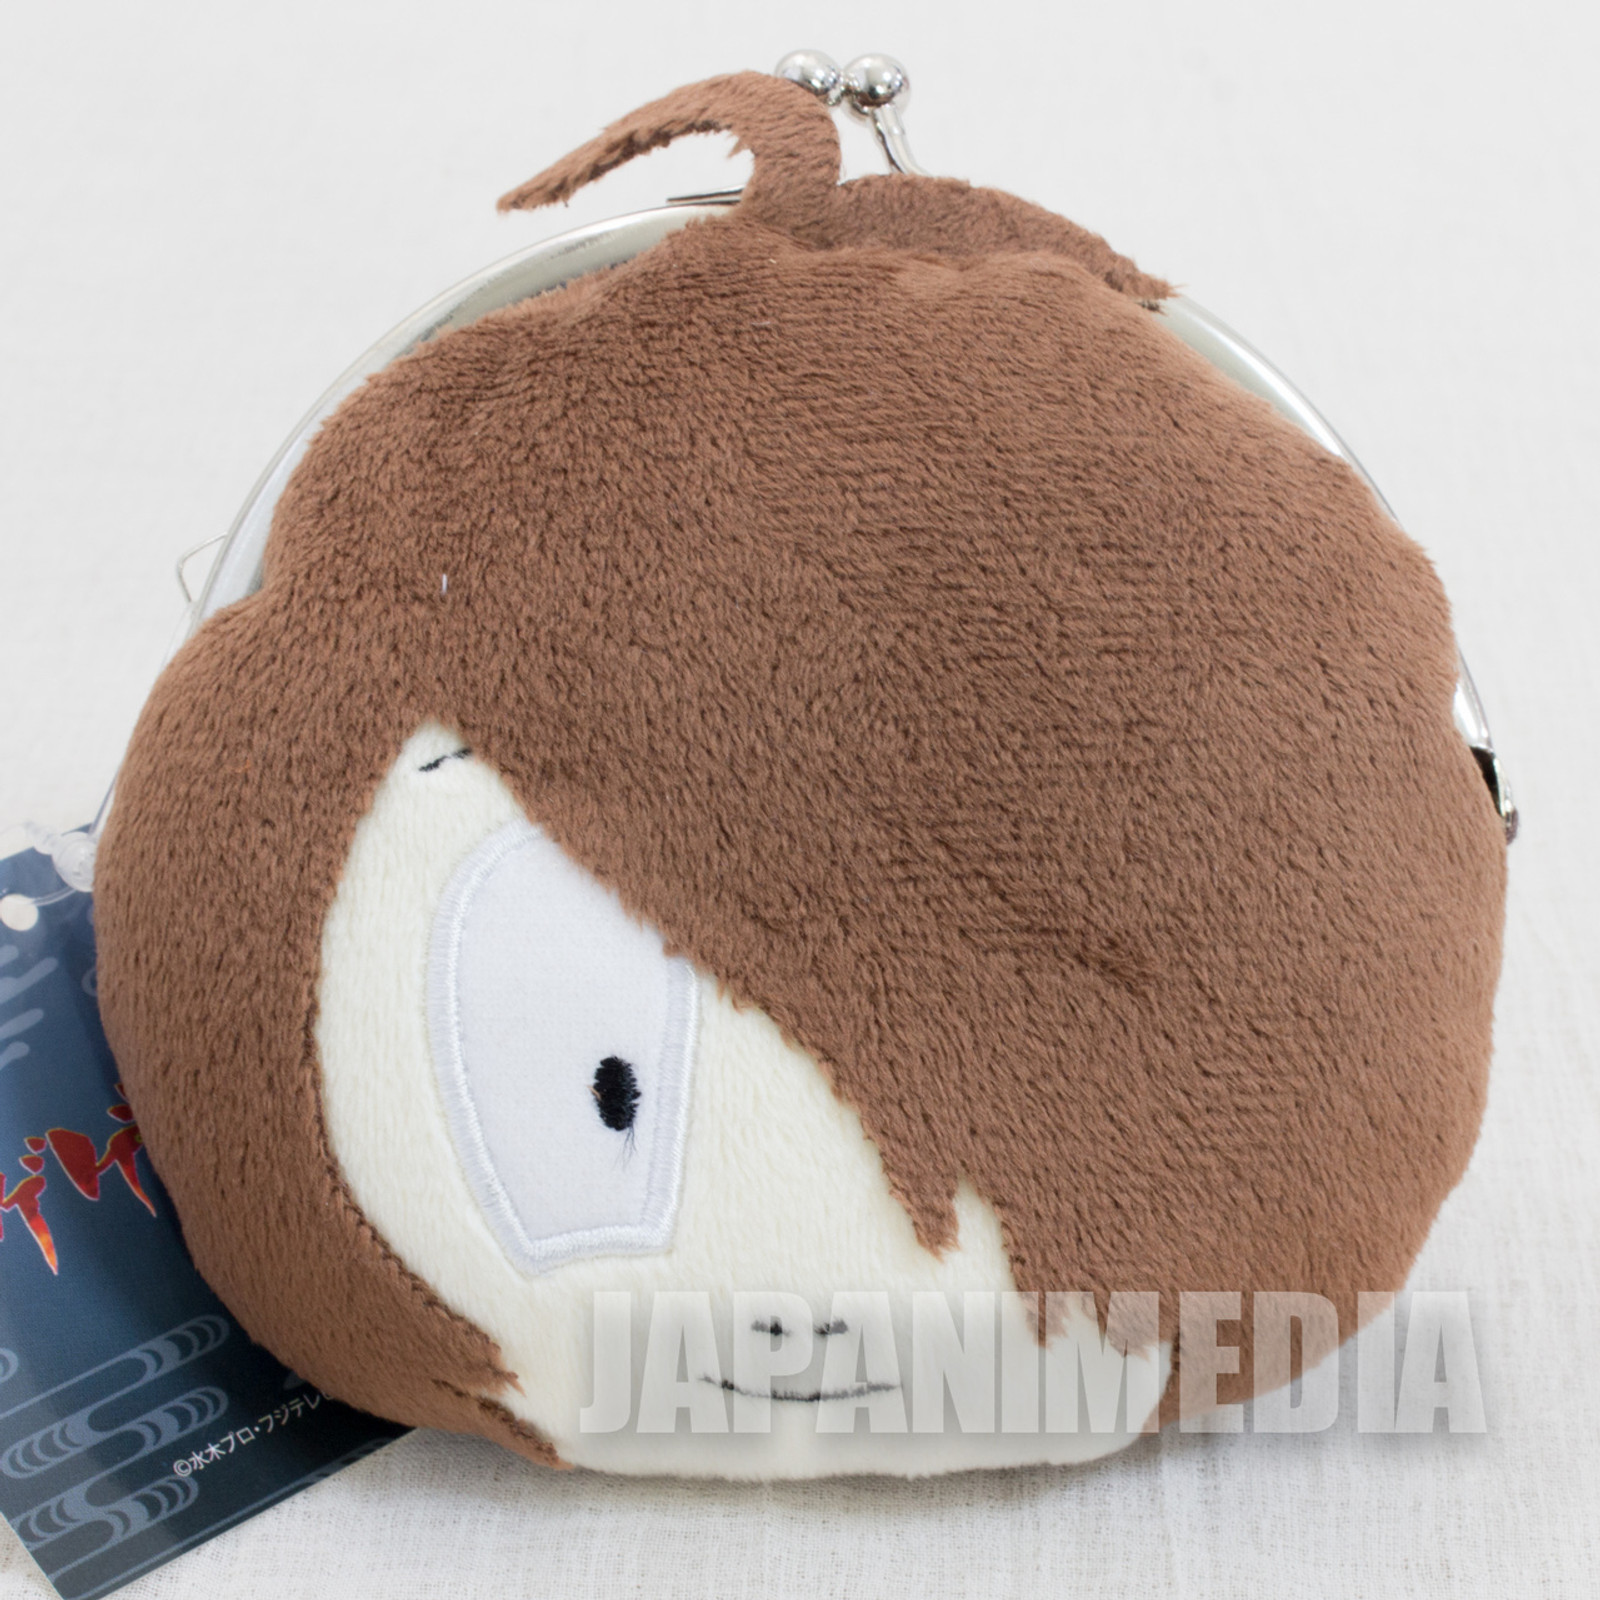 Gegege no Kitaro Face Plush Doll Type Coin Purse Gamaguchi JAPAN ANIME